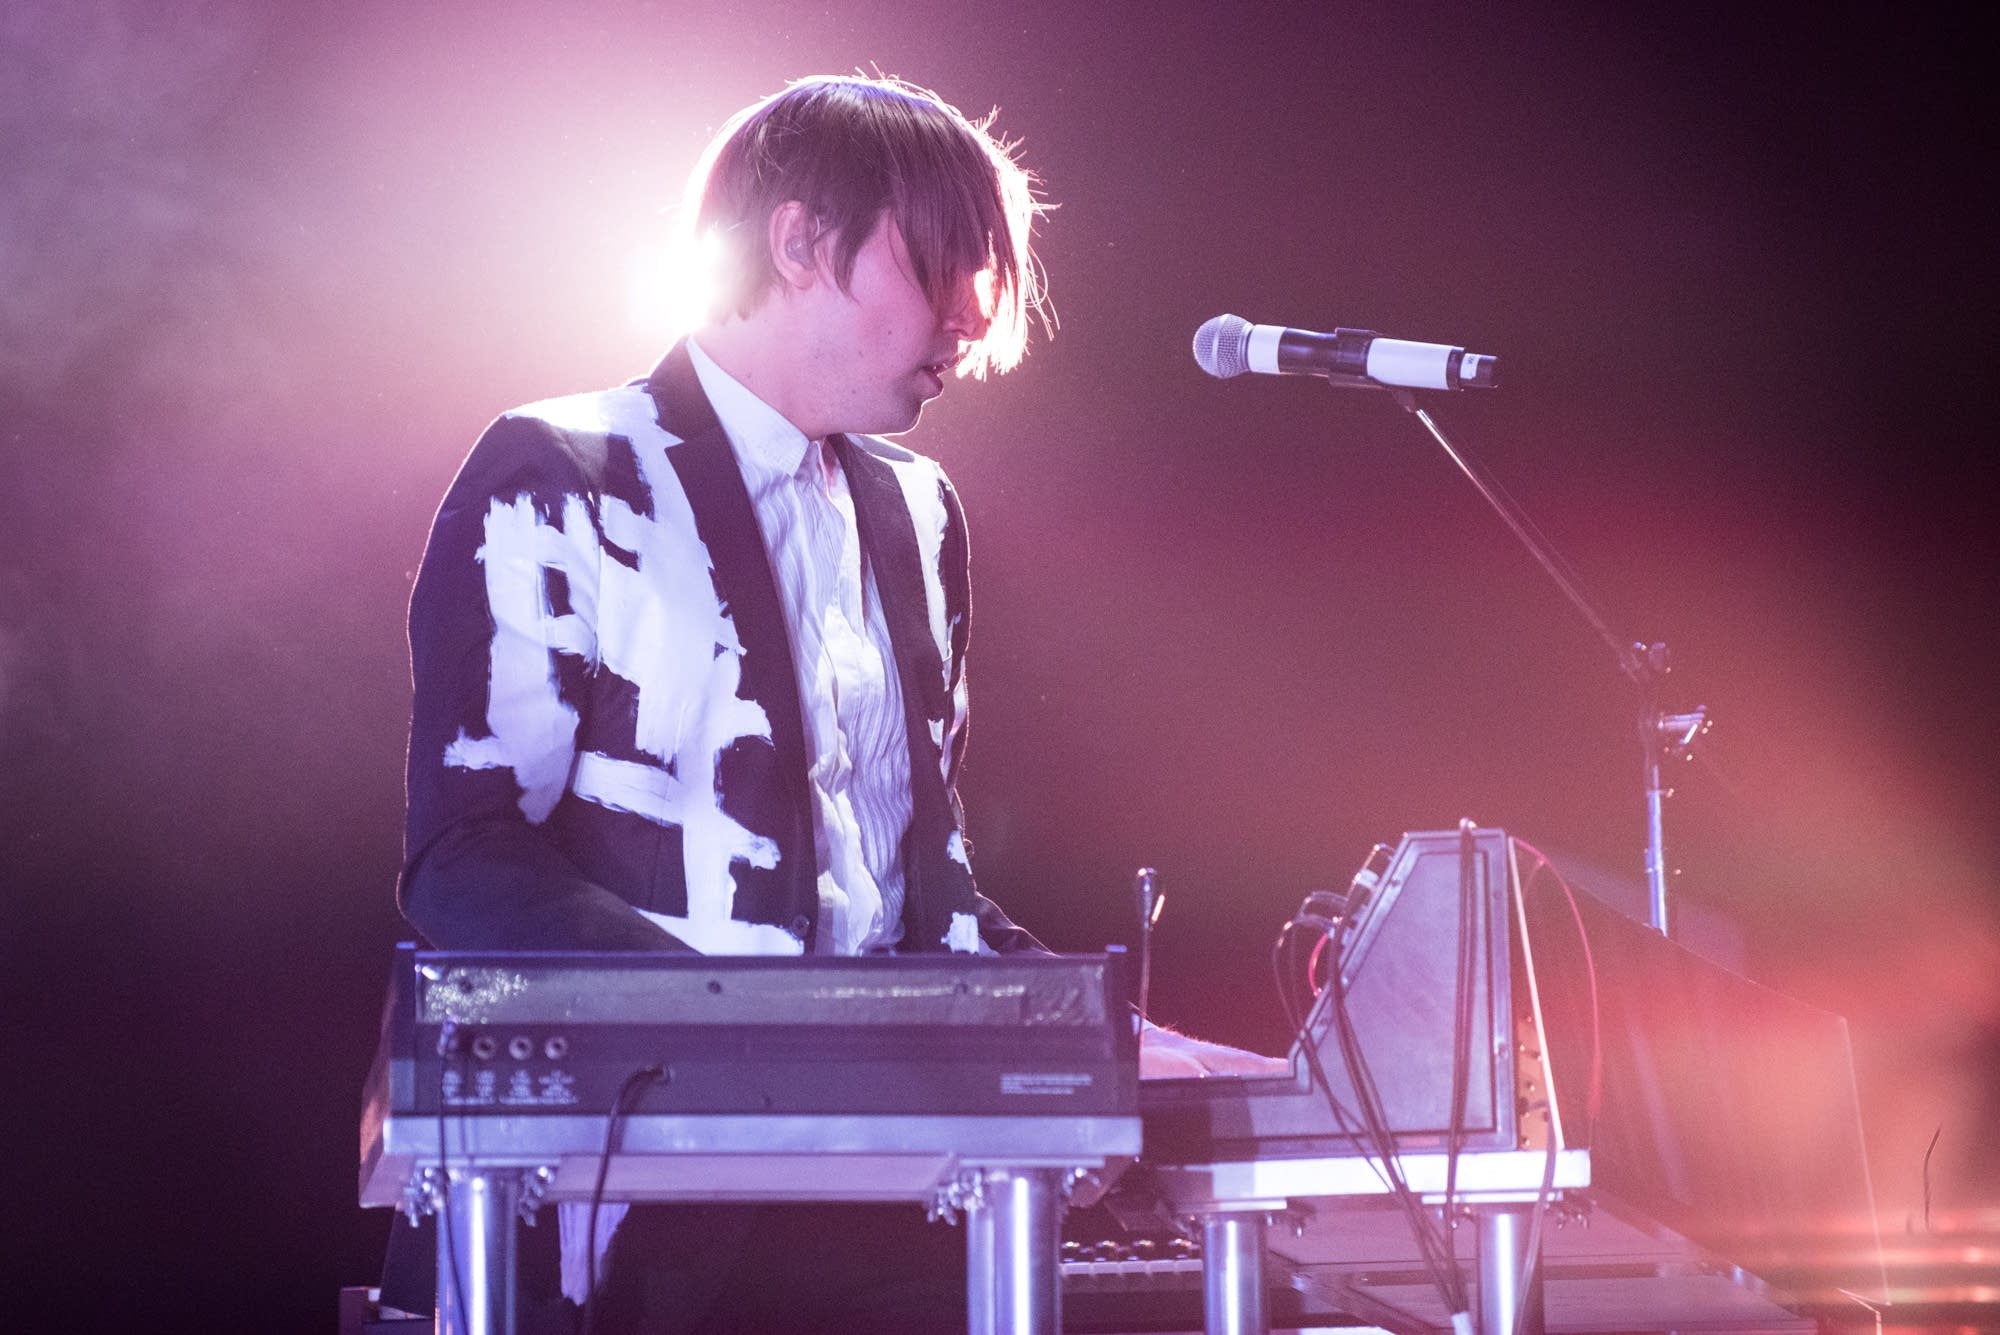 Arcade Fire's William Butler on keyboards